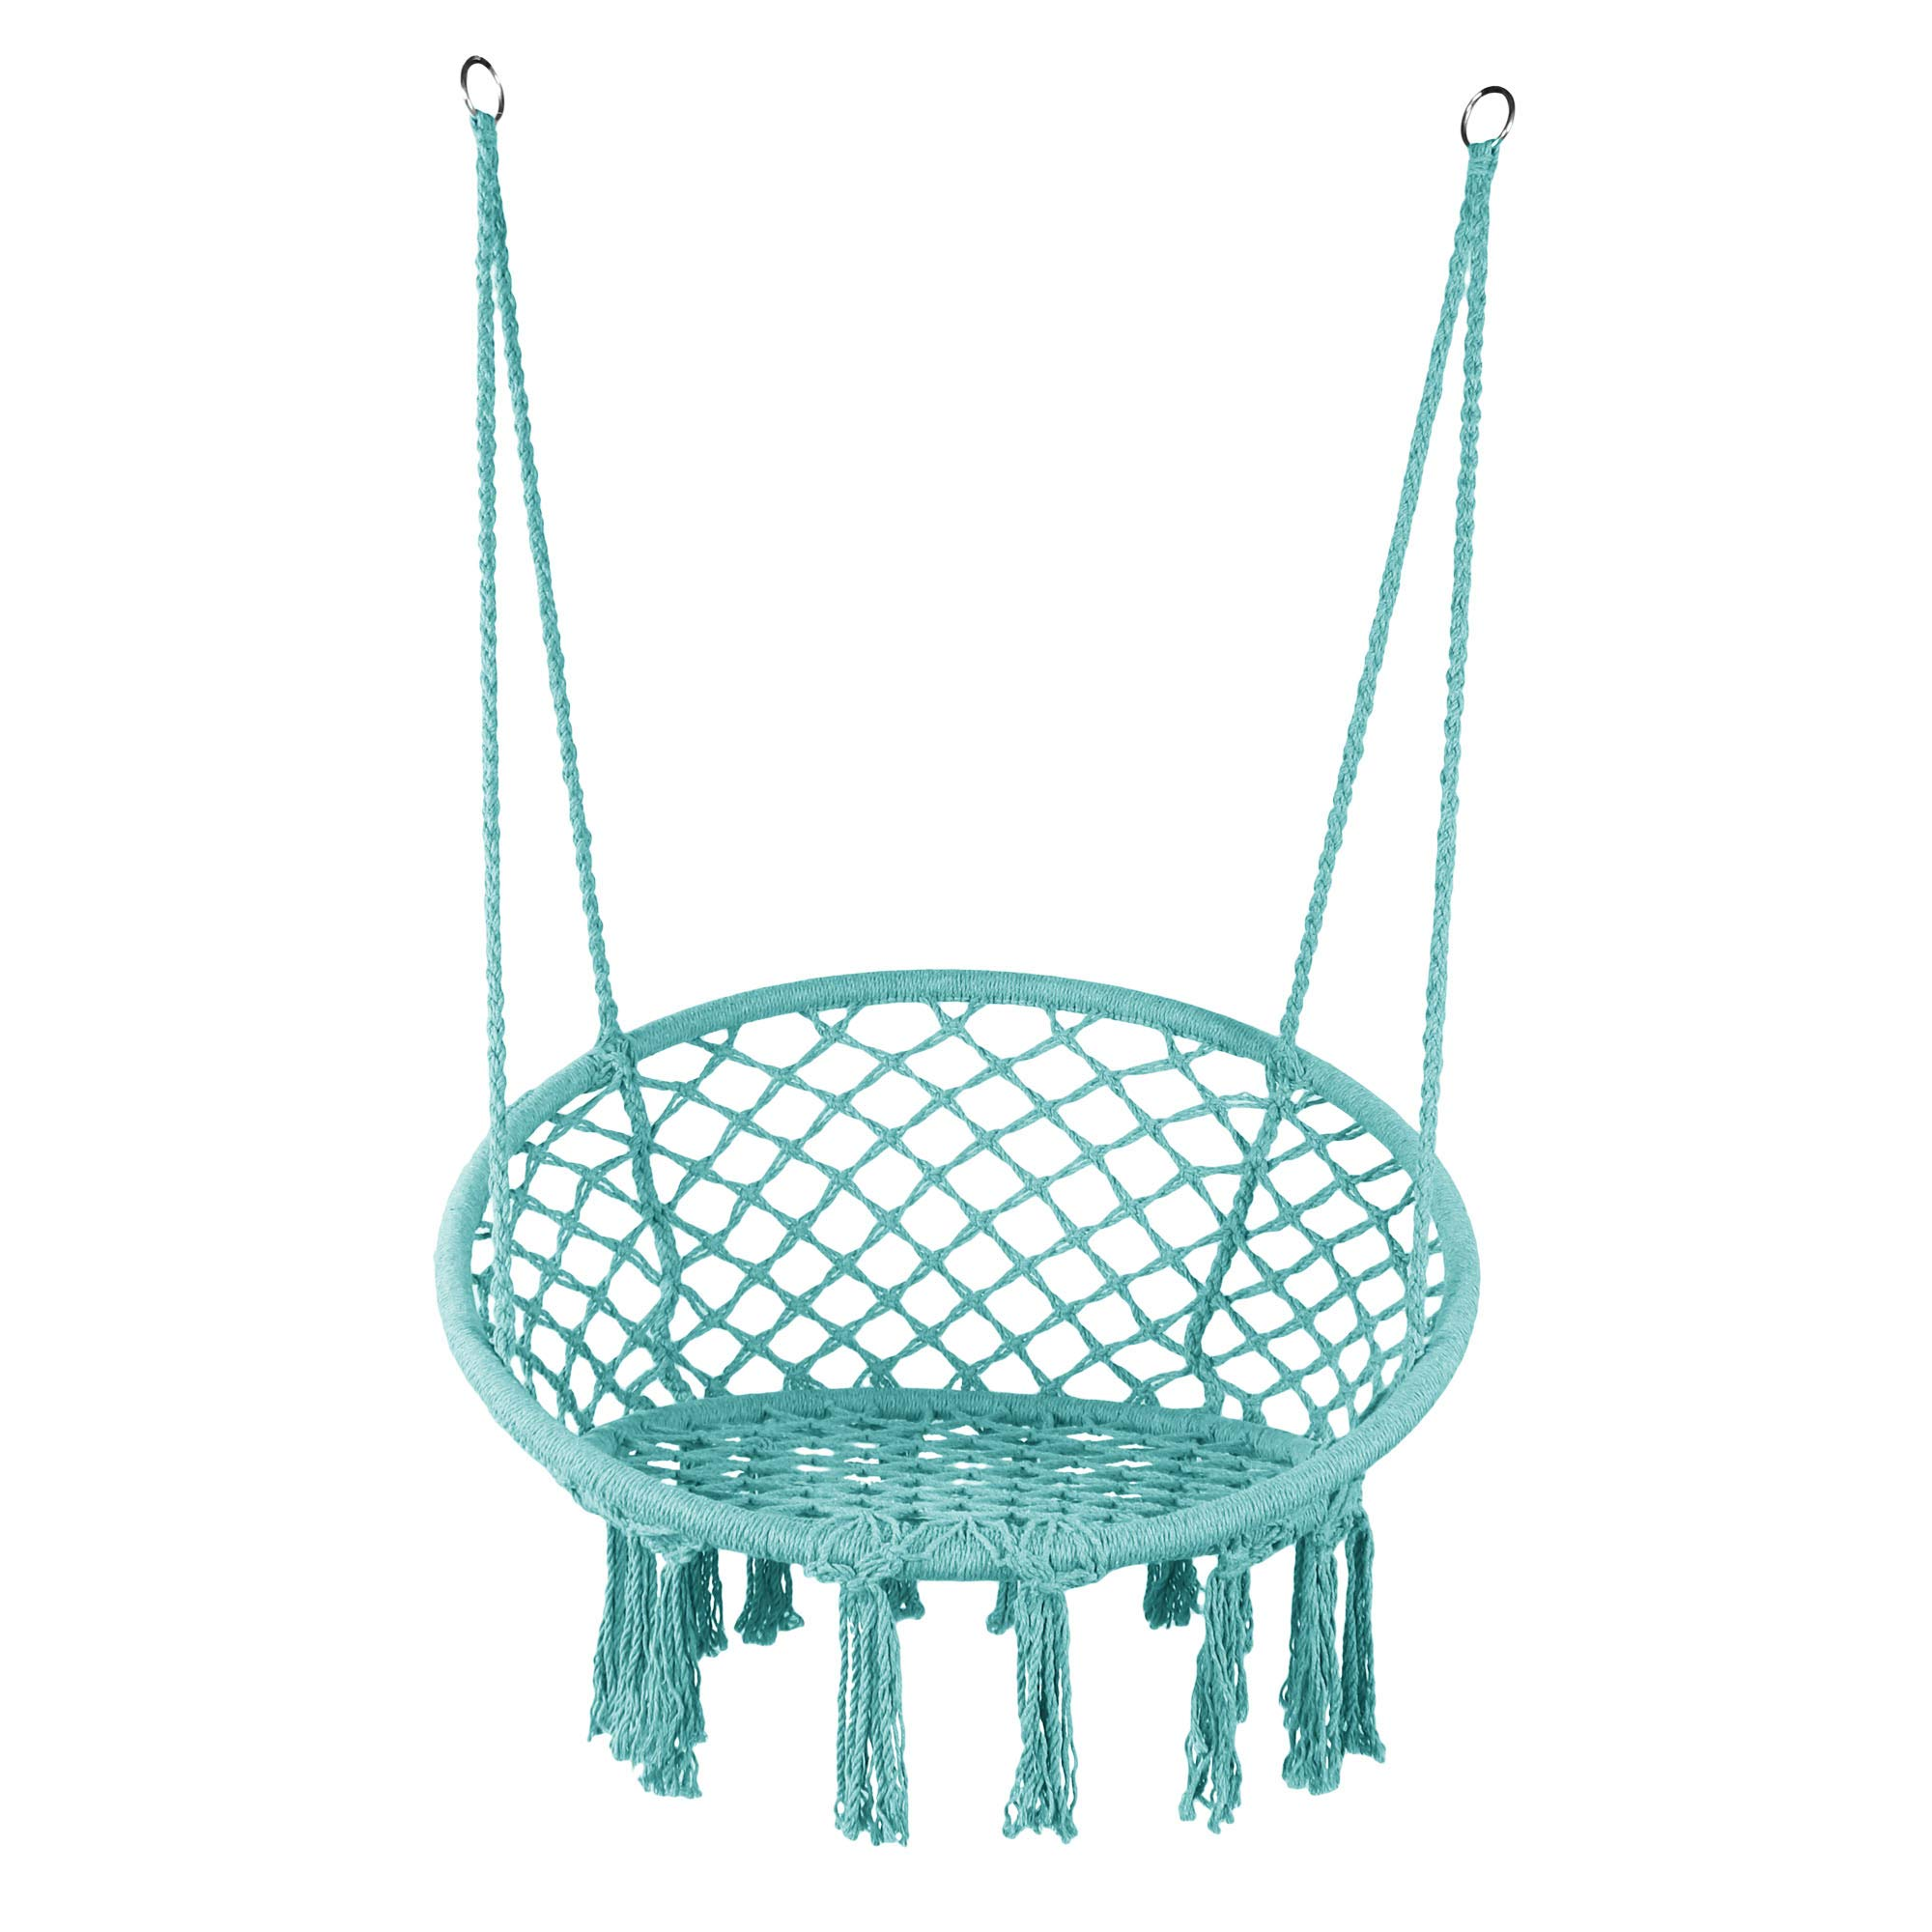 LAZZO Hammock Chair Hanging Knitted Mesh Polyester Rope Macrame Swing, 260 Pounds Capacity, 23.6'' Seat Width,for Bedroom, Outdoors, Garden, Patio, Yard. Child, Girl, Adult. (Blue)